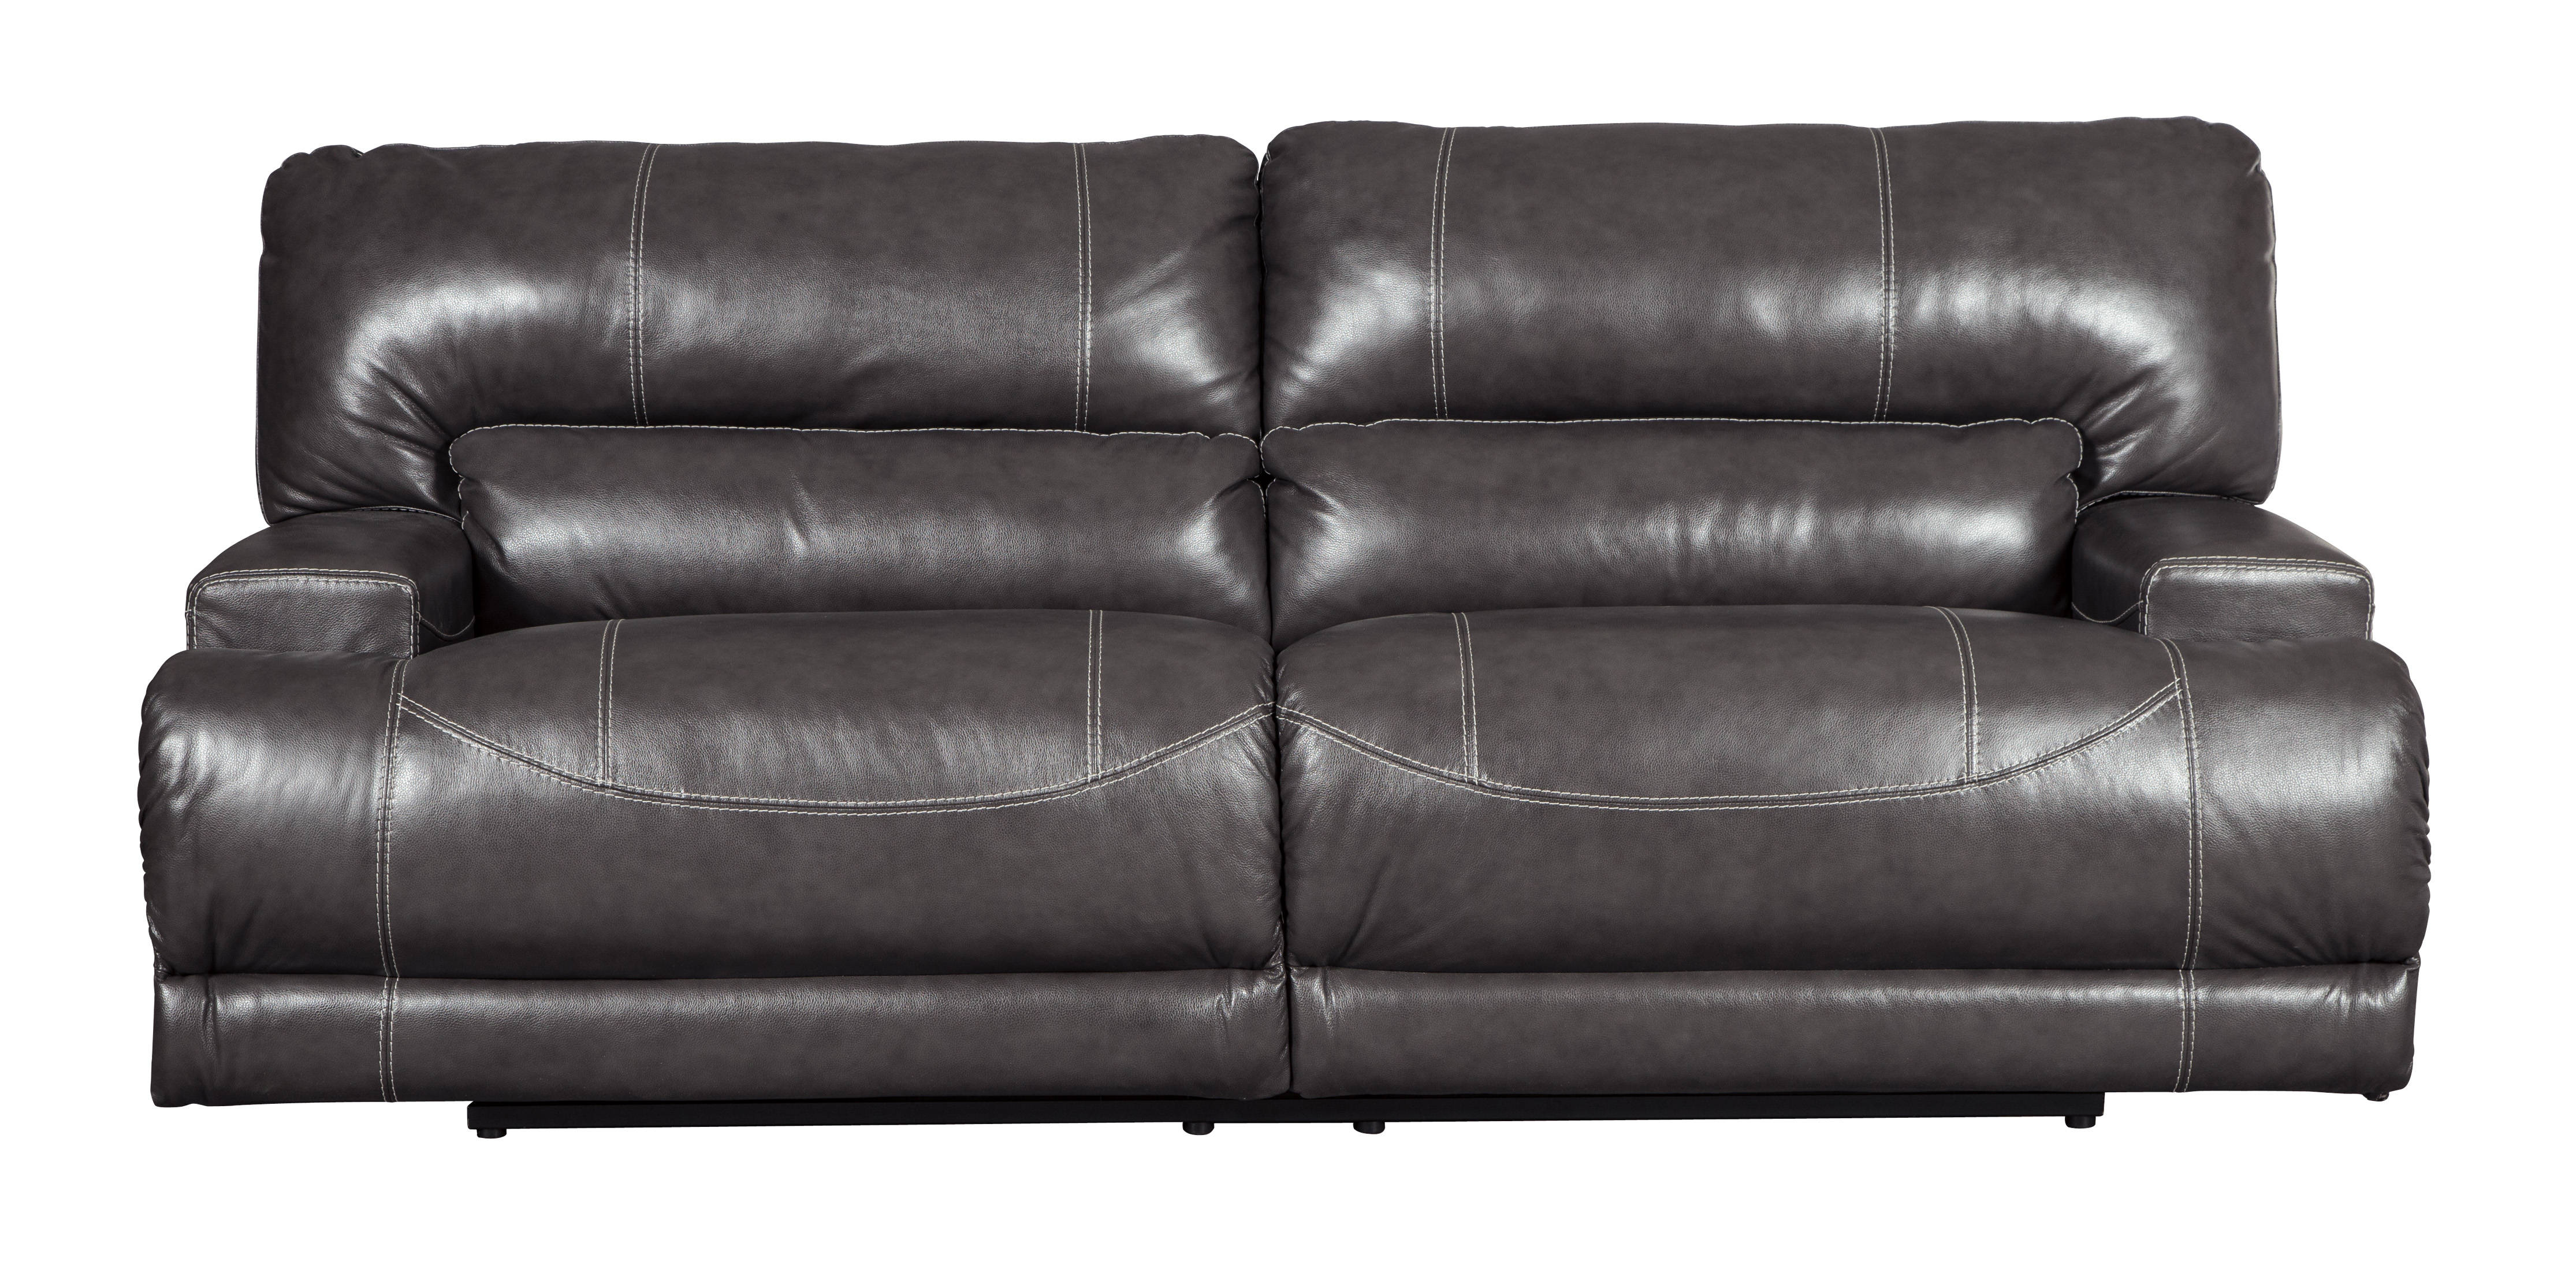 McCaskill Contemporary Gray Leather 2 Seat Reclining Sofa